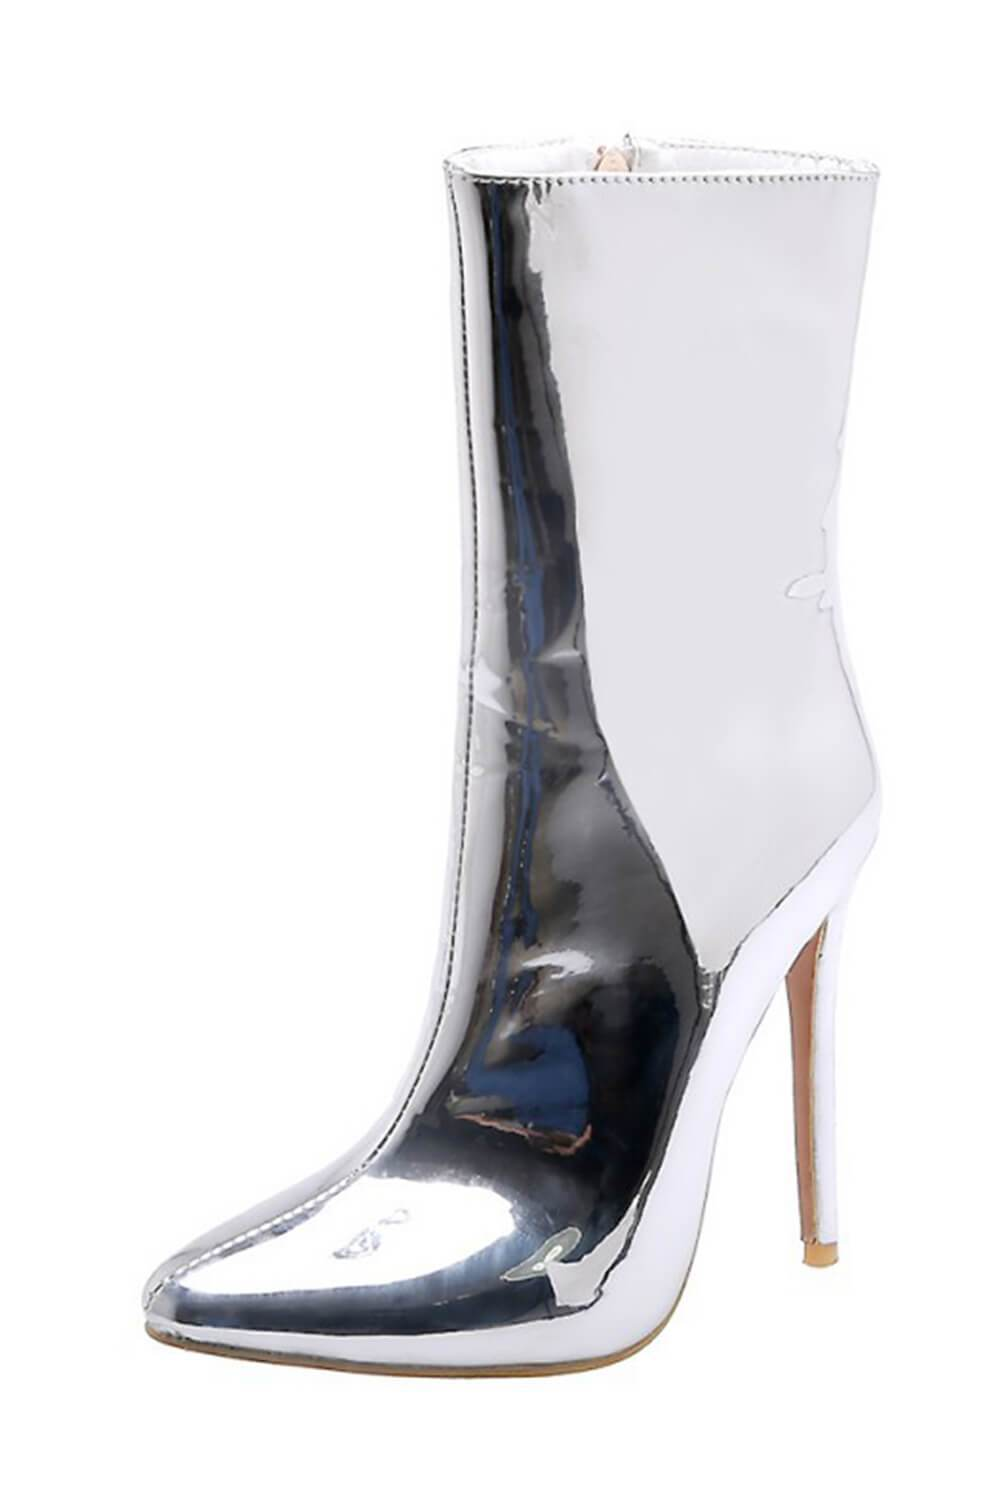 Metallic Silver Pointed Stiletto Sock Boots (4307981140027)